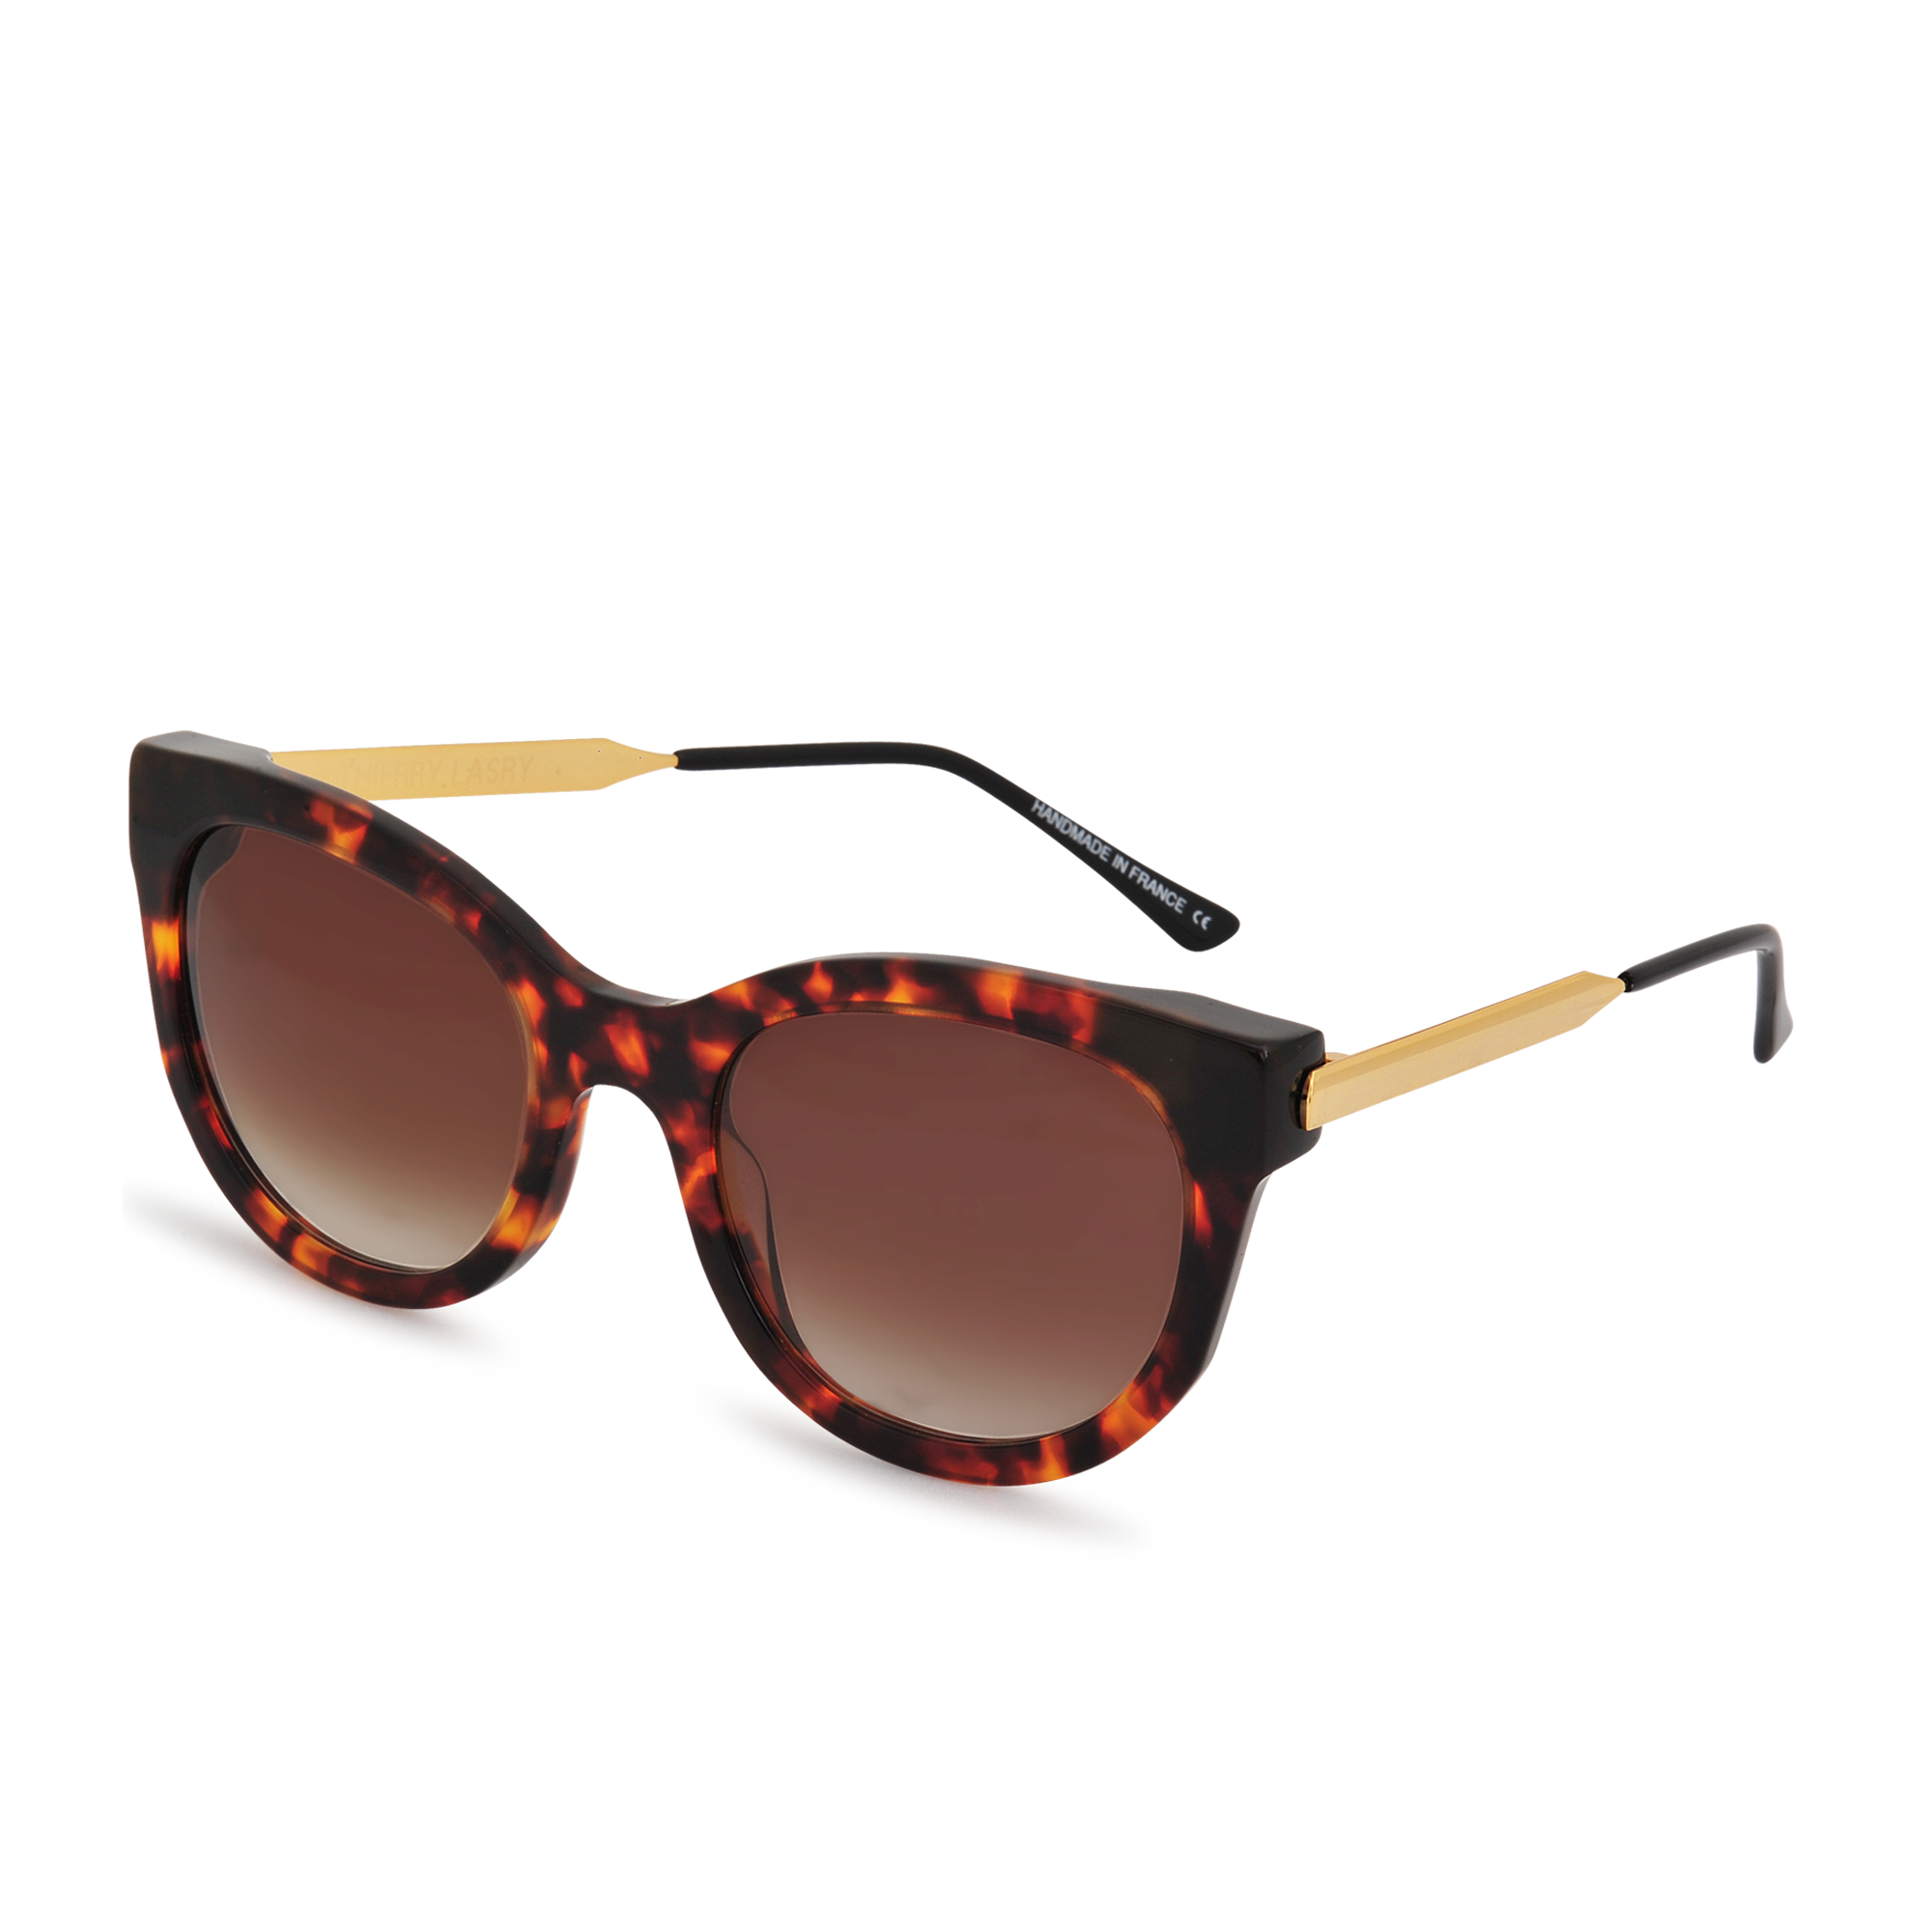 Thierry lasry Lively 008 Sunglasses in Brown